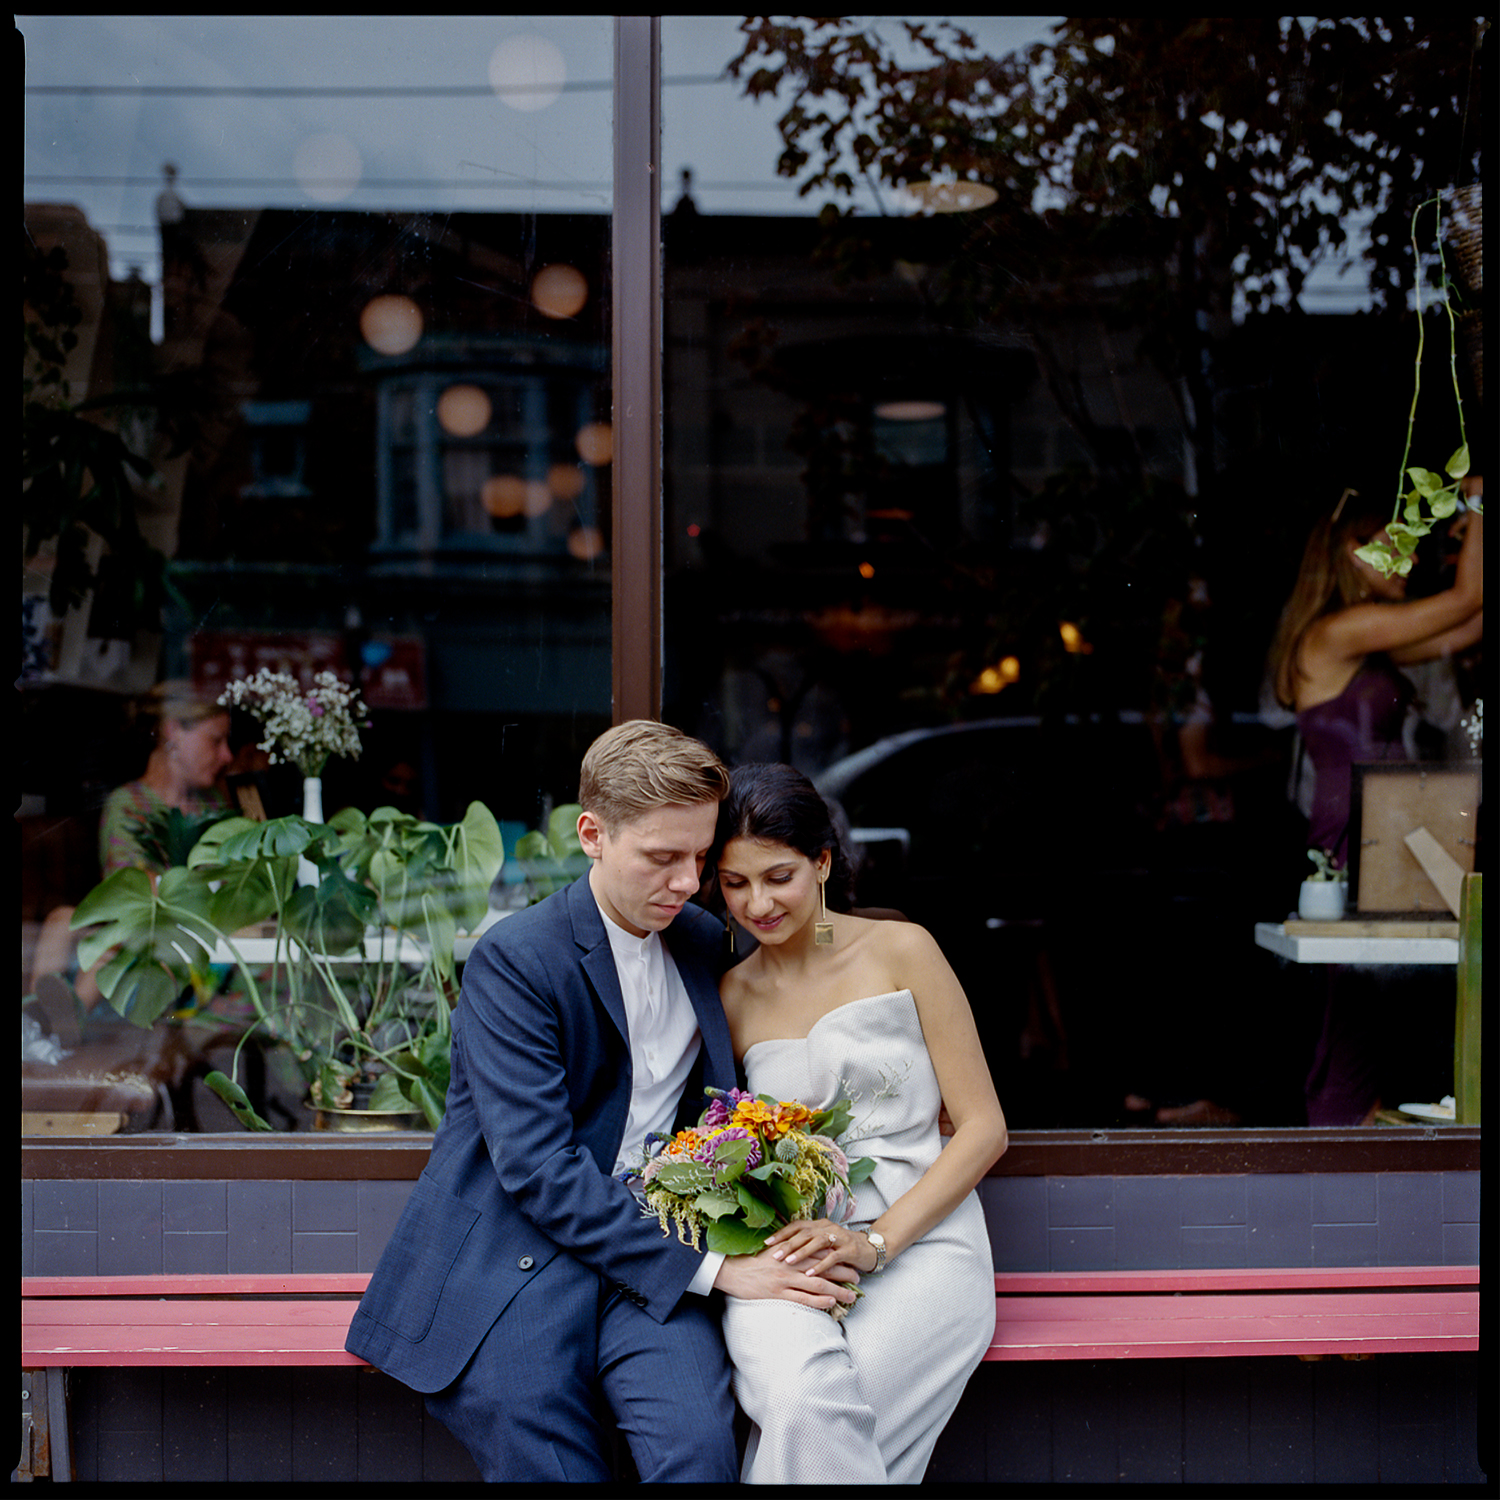 urban-downtown-toronto-wedding-fat-pasha-torontos-best-wedding-photographer-3b-photography-film-photographer-analog-photography-outdoor-patio-cocktail-hour-portraits-of-bride-and-groom-in-entrance-golden-hour-intimate.jpg